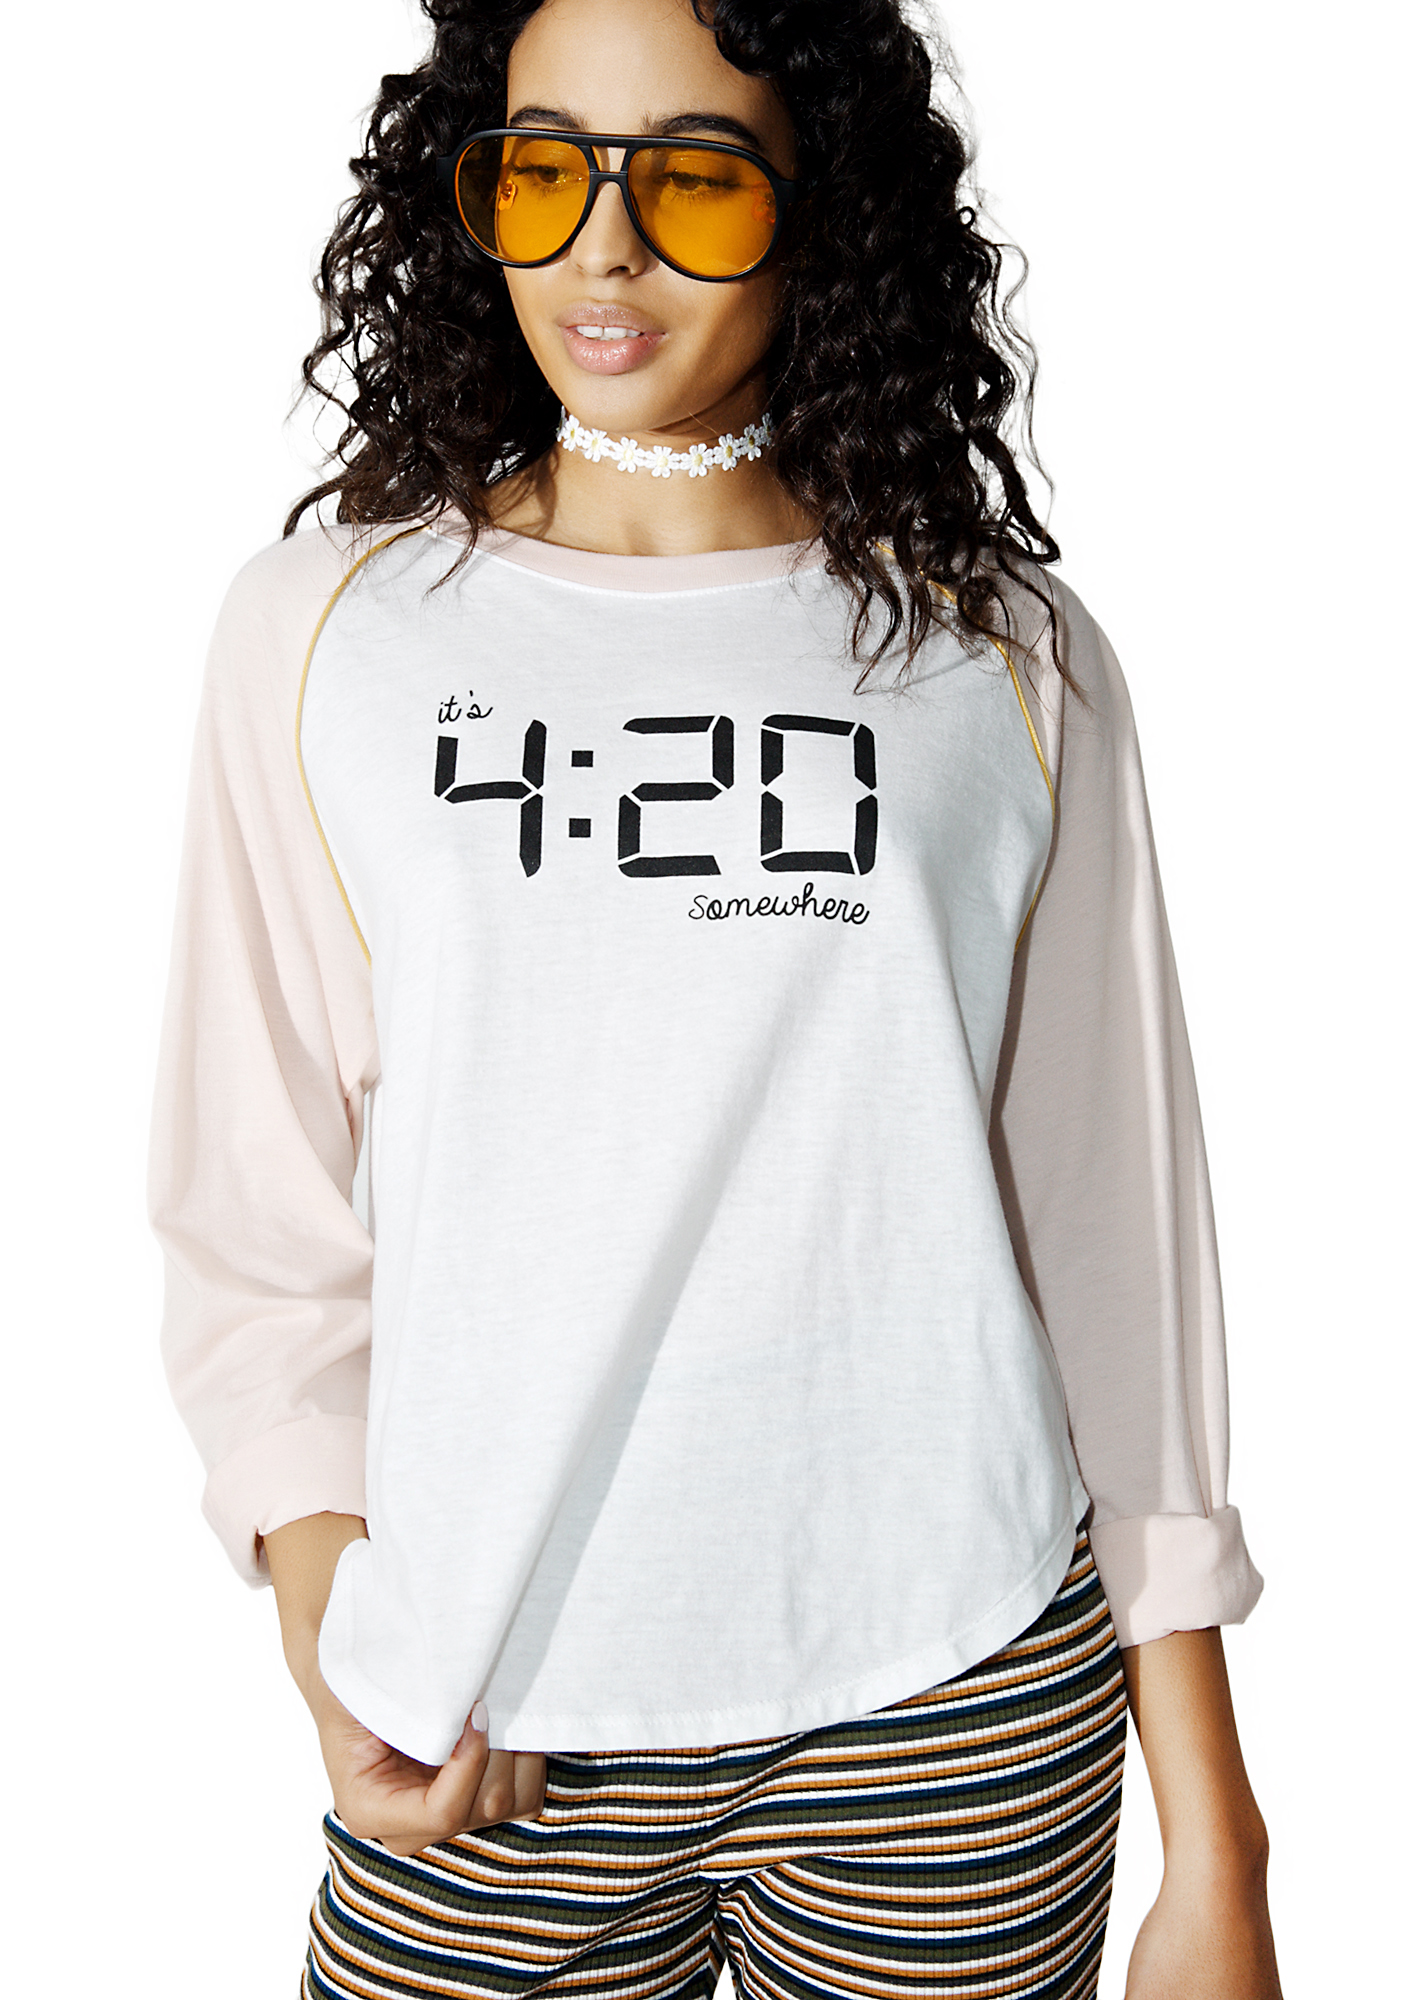 Camp Collection 420 Somewhere Baseball Tee